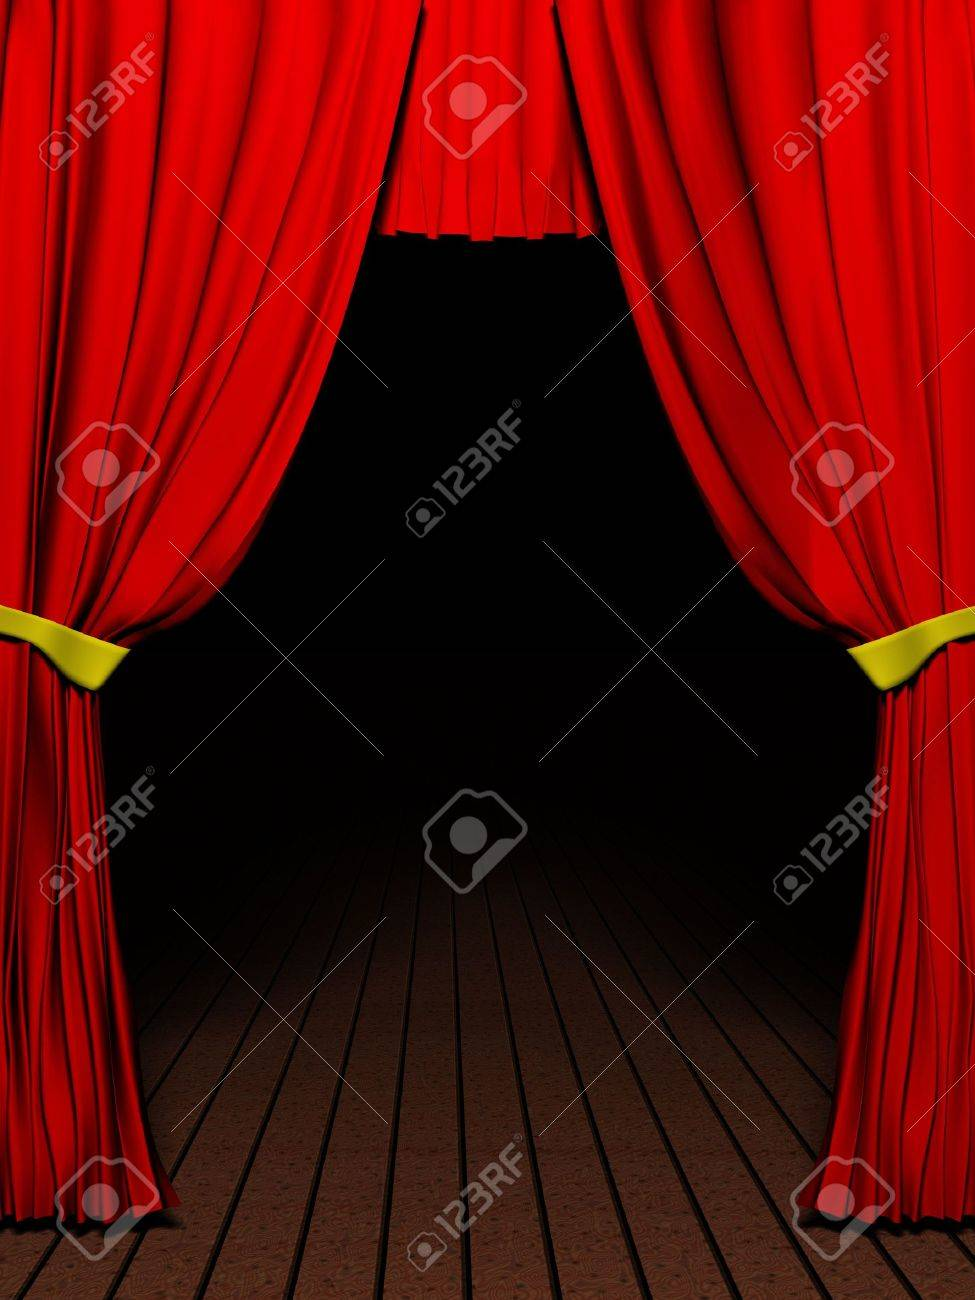 Rendering 3D red velvet theatre courtains and Wood floor Stock Photo - 3028195